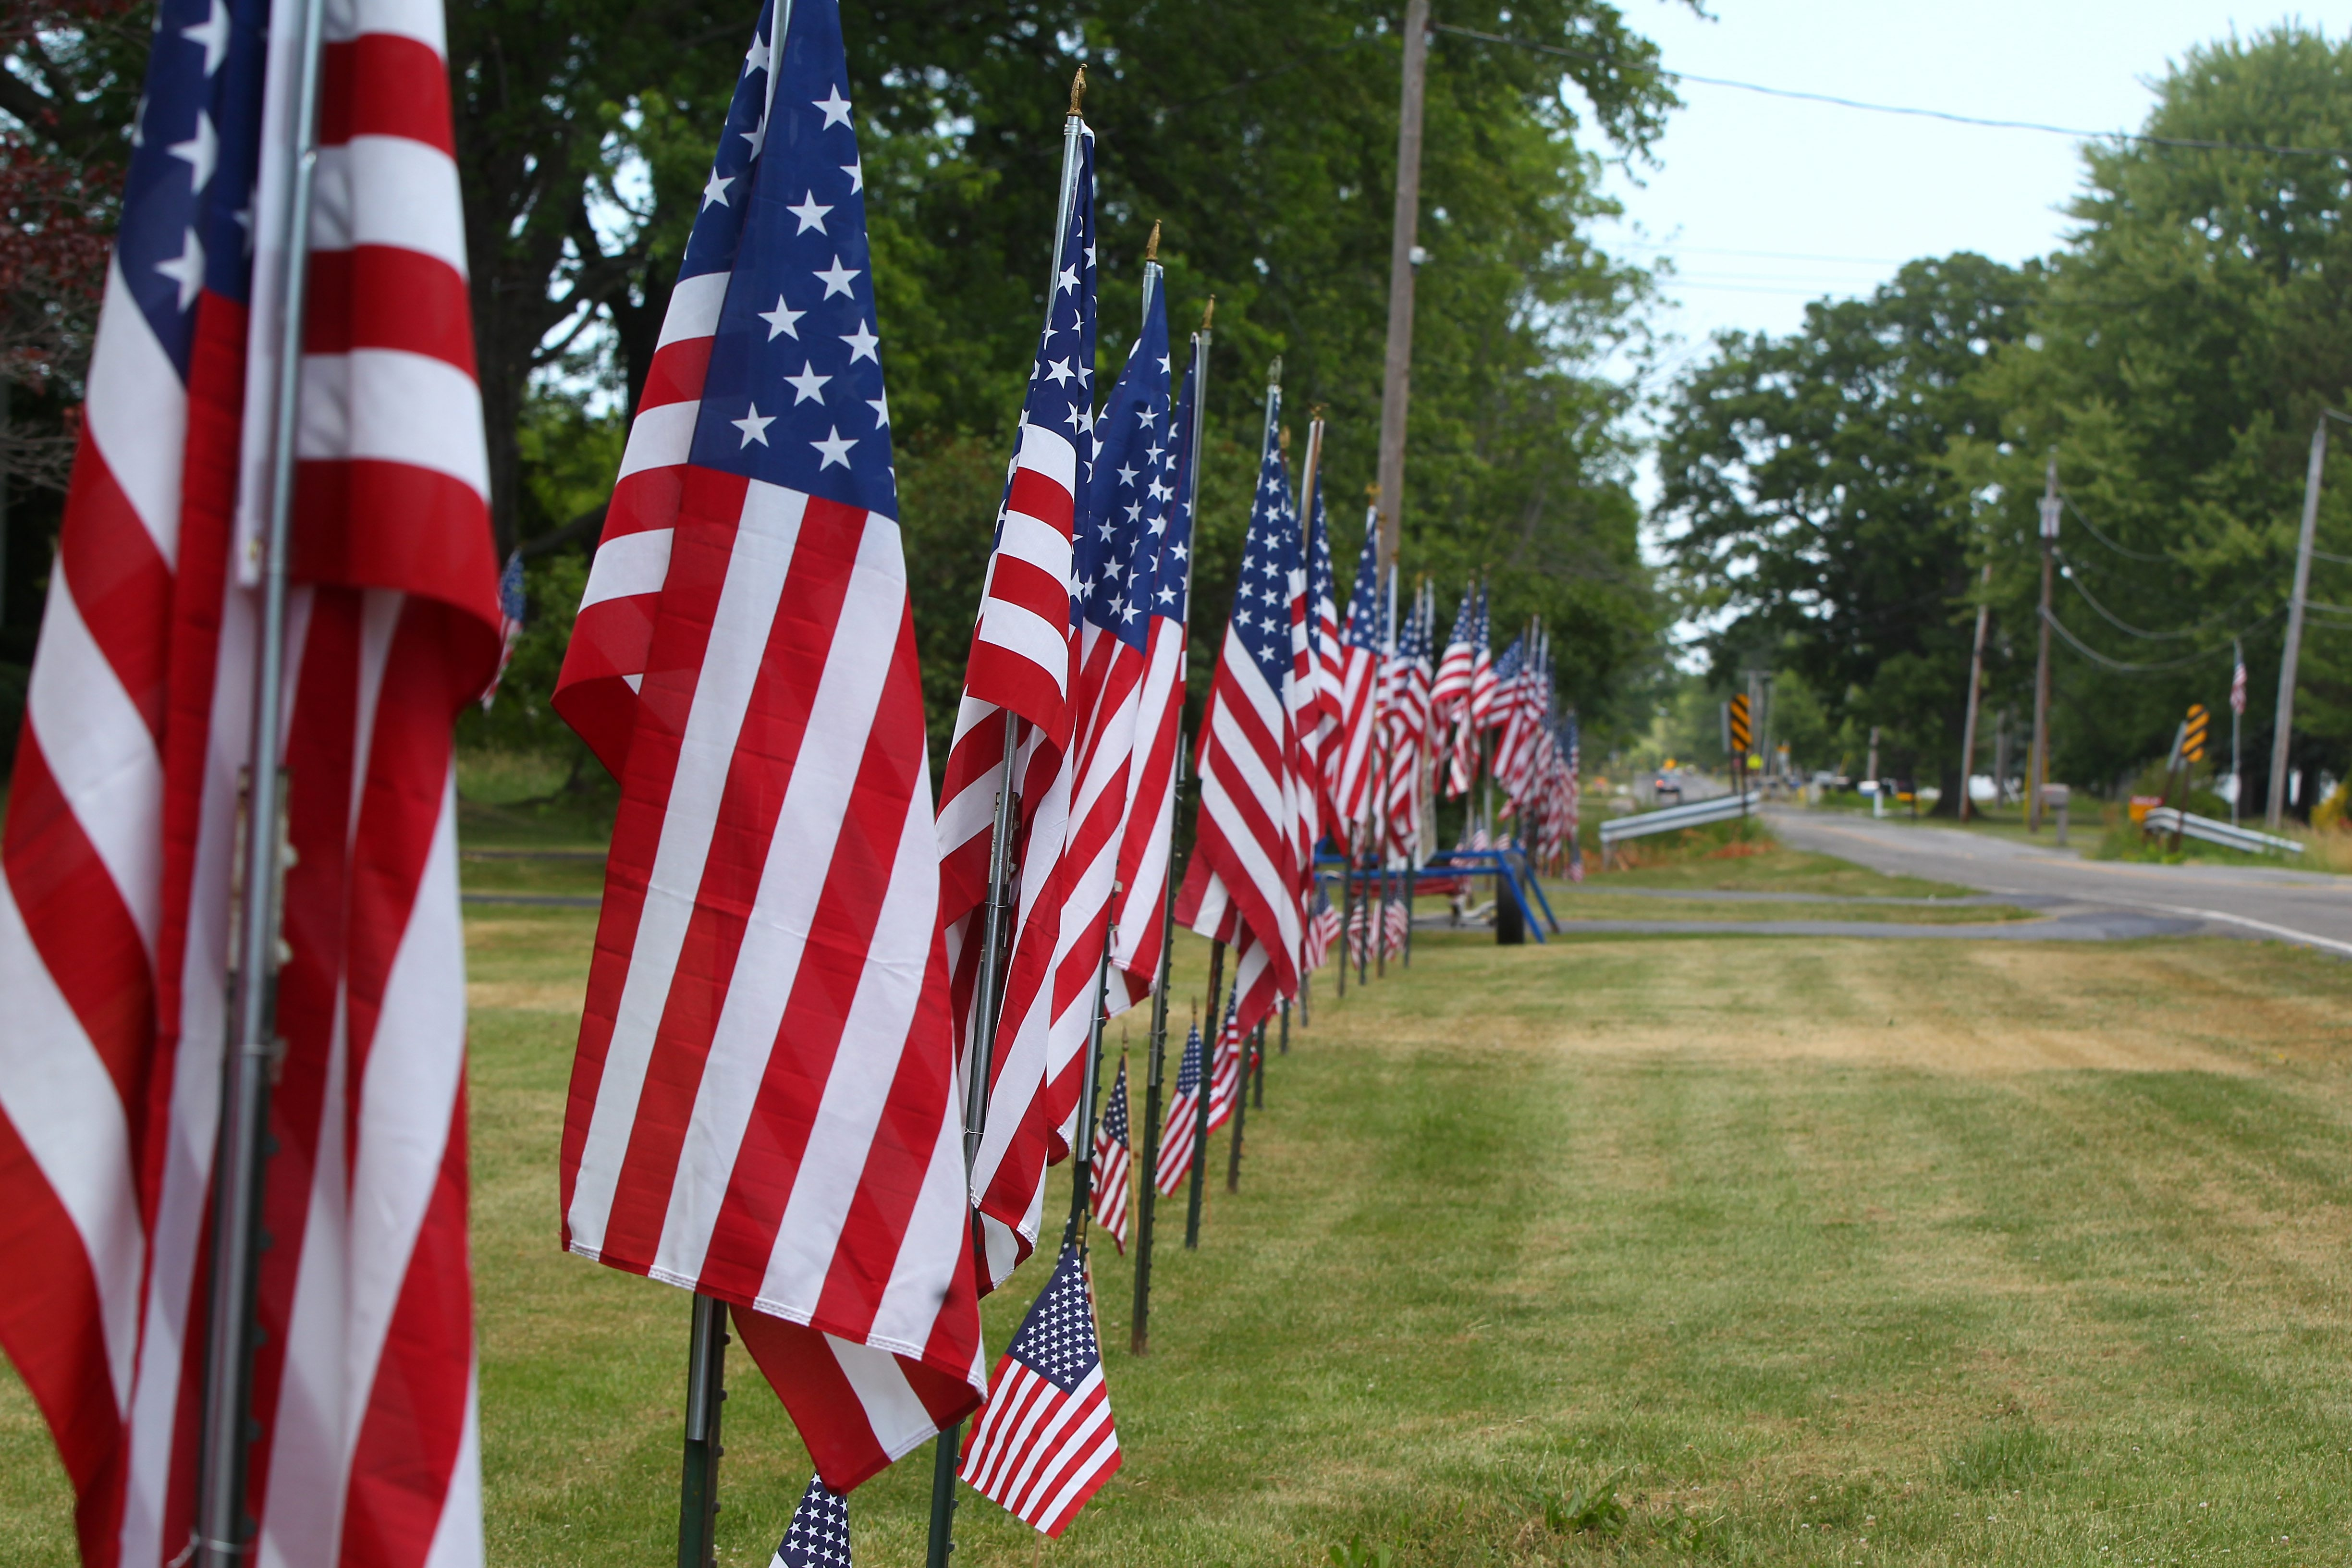 Flags line the road in front of Paul Greinert's farm on Errick Road in Wheatfield. The tradition began with the birth of a grandchild.